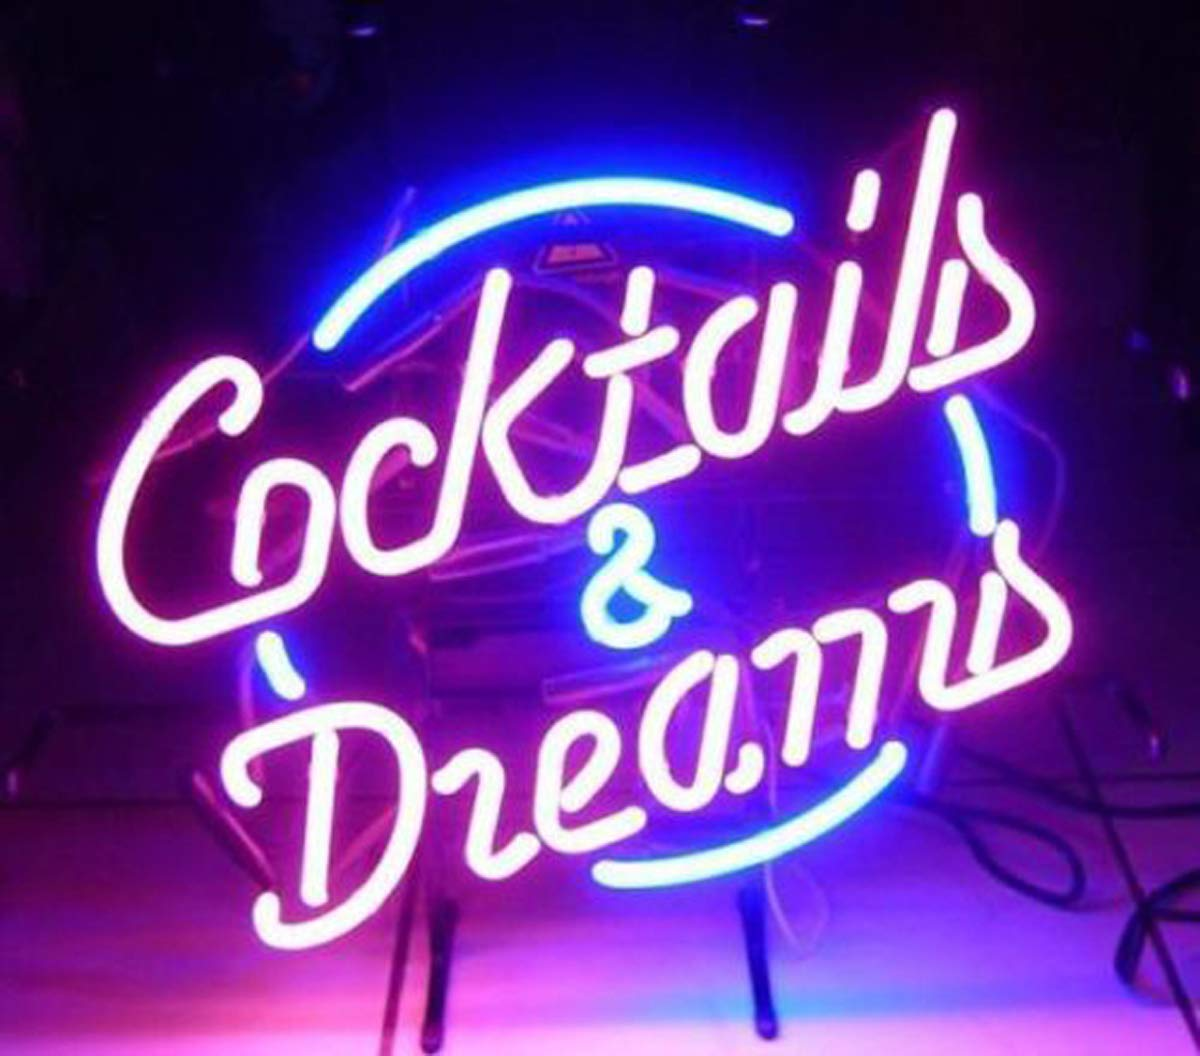 LDGJ Cocktails and Dreams Neon Light Sign Home Bar Pub Recreation Room Game Lights Windows Glass Wall Signs Party Birthday Bedroom Bedside Table Decoration Gifts